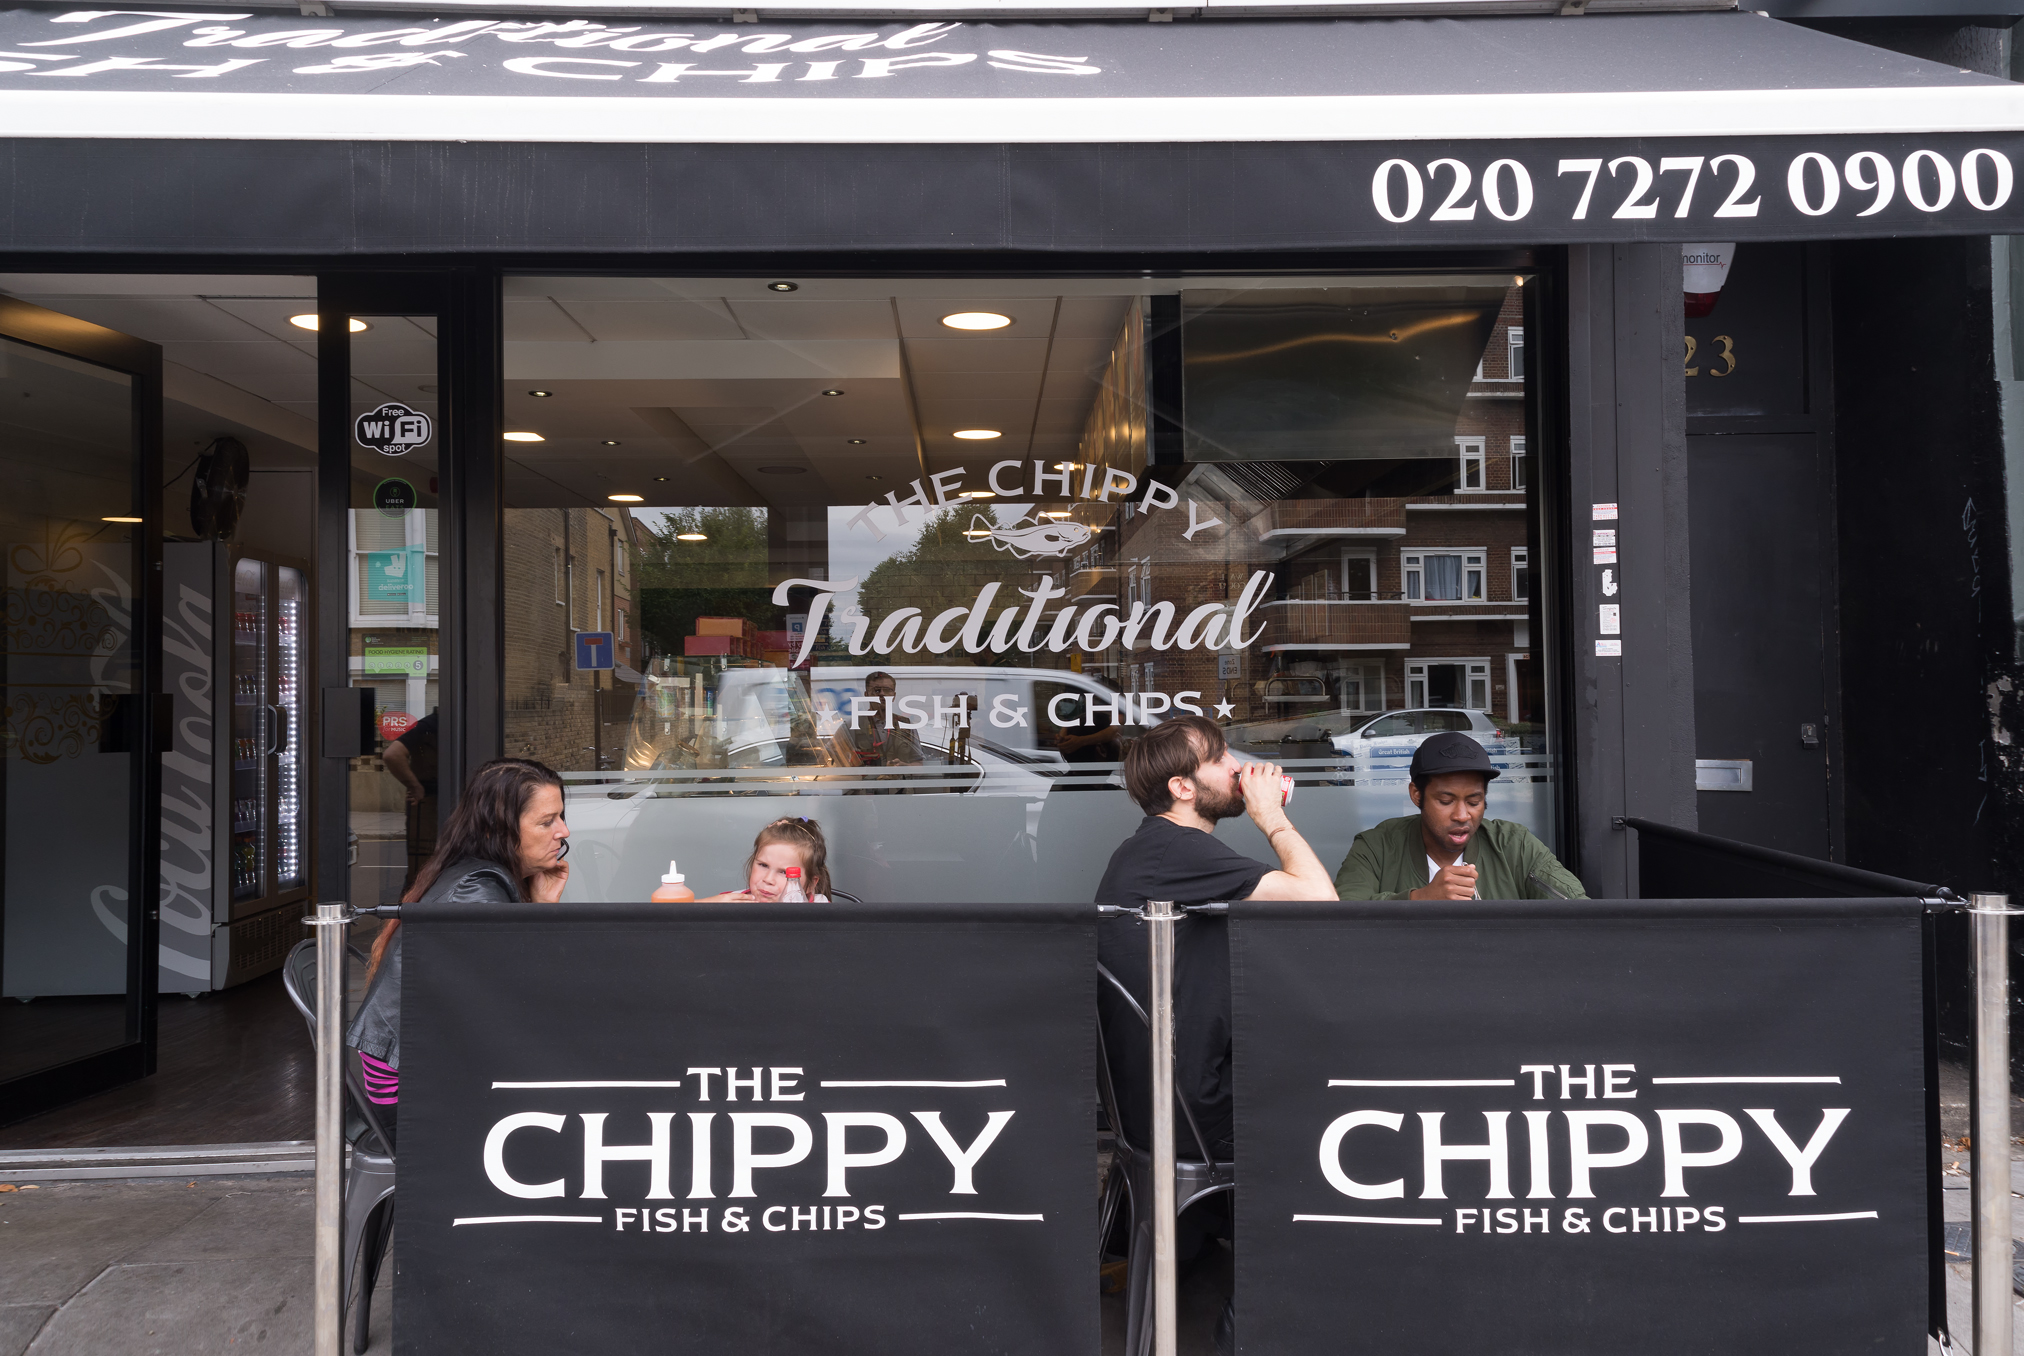 The-chippy-exterior